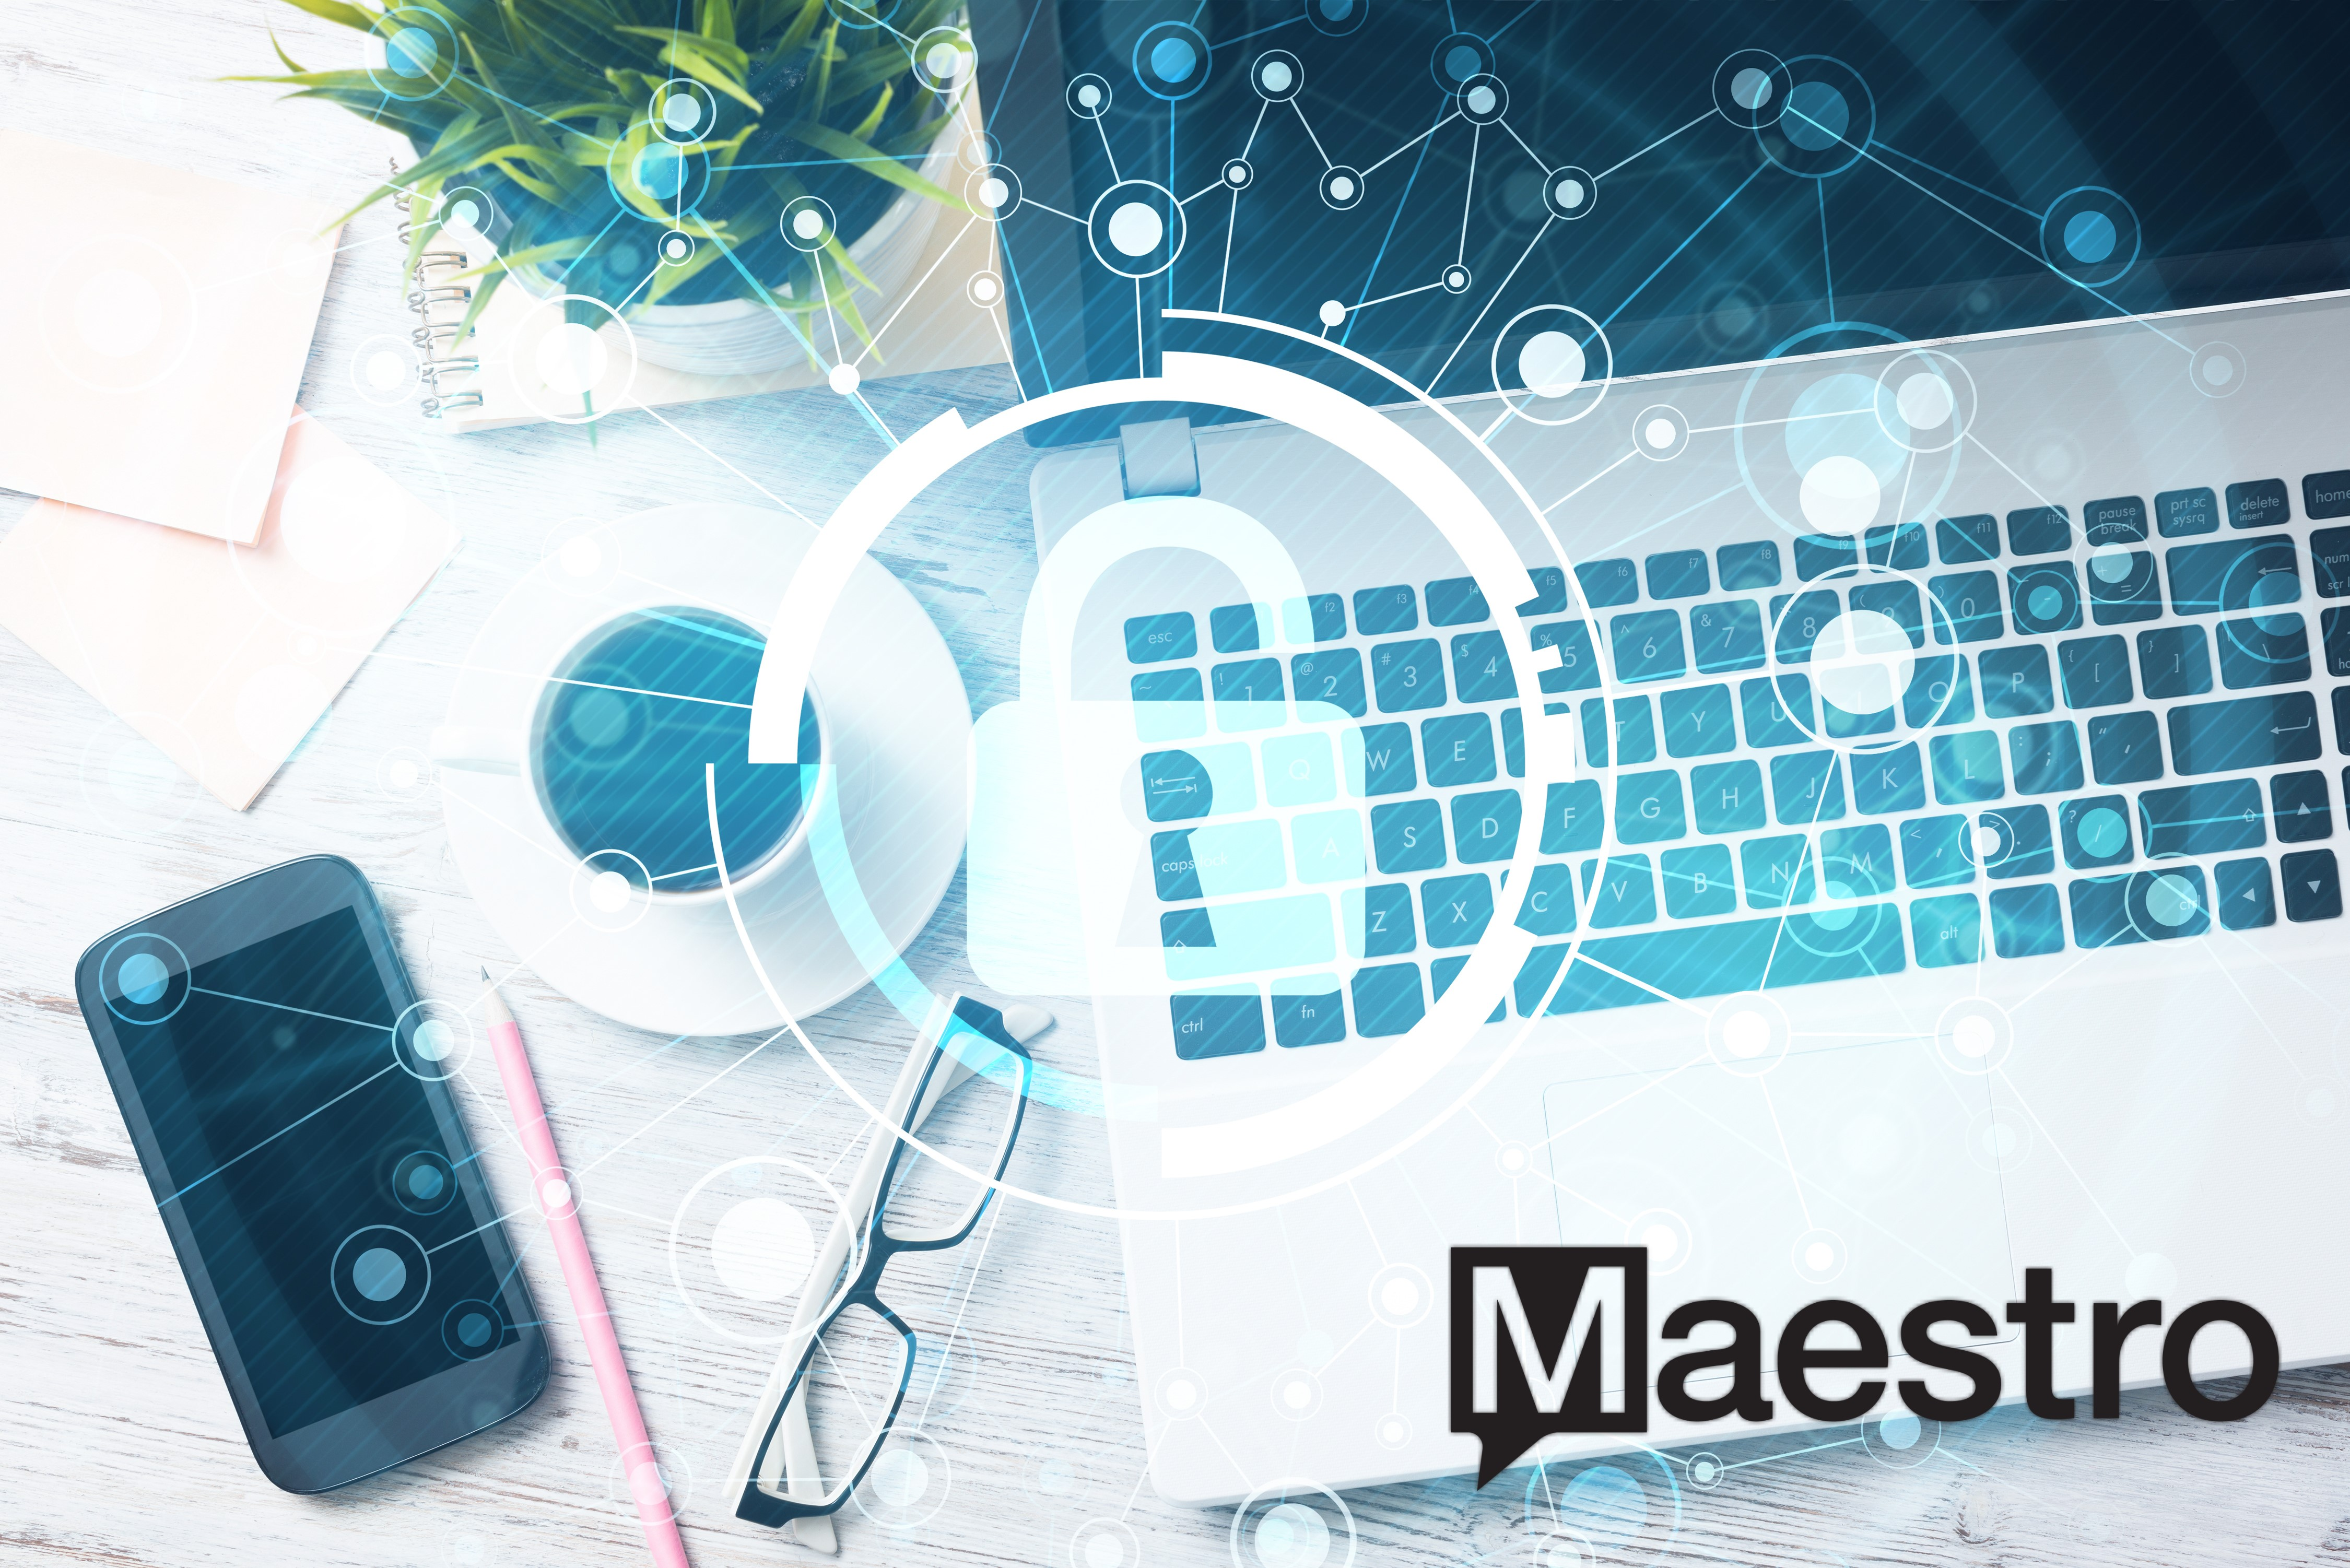 aug25primg - Understanding the Security Risks of Your Hotel's PMS Data Hosting Environment - Innovative Property Management Software Solutions Powering Hotels, Resorts & Multi‑Property Groups.